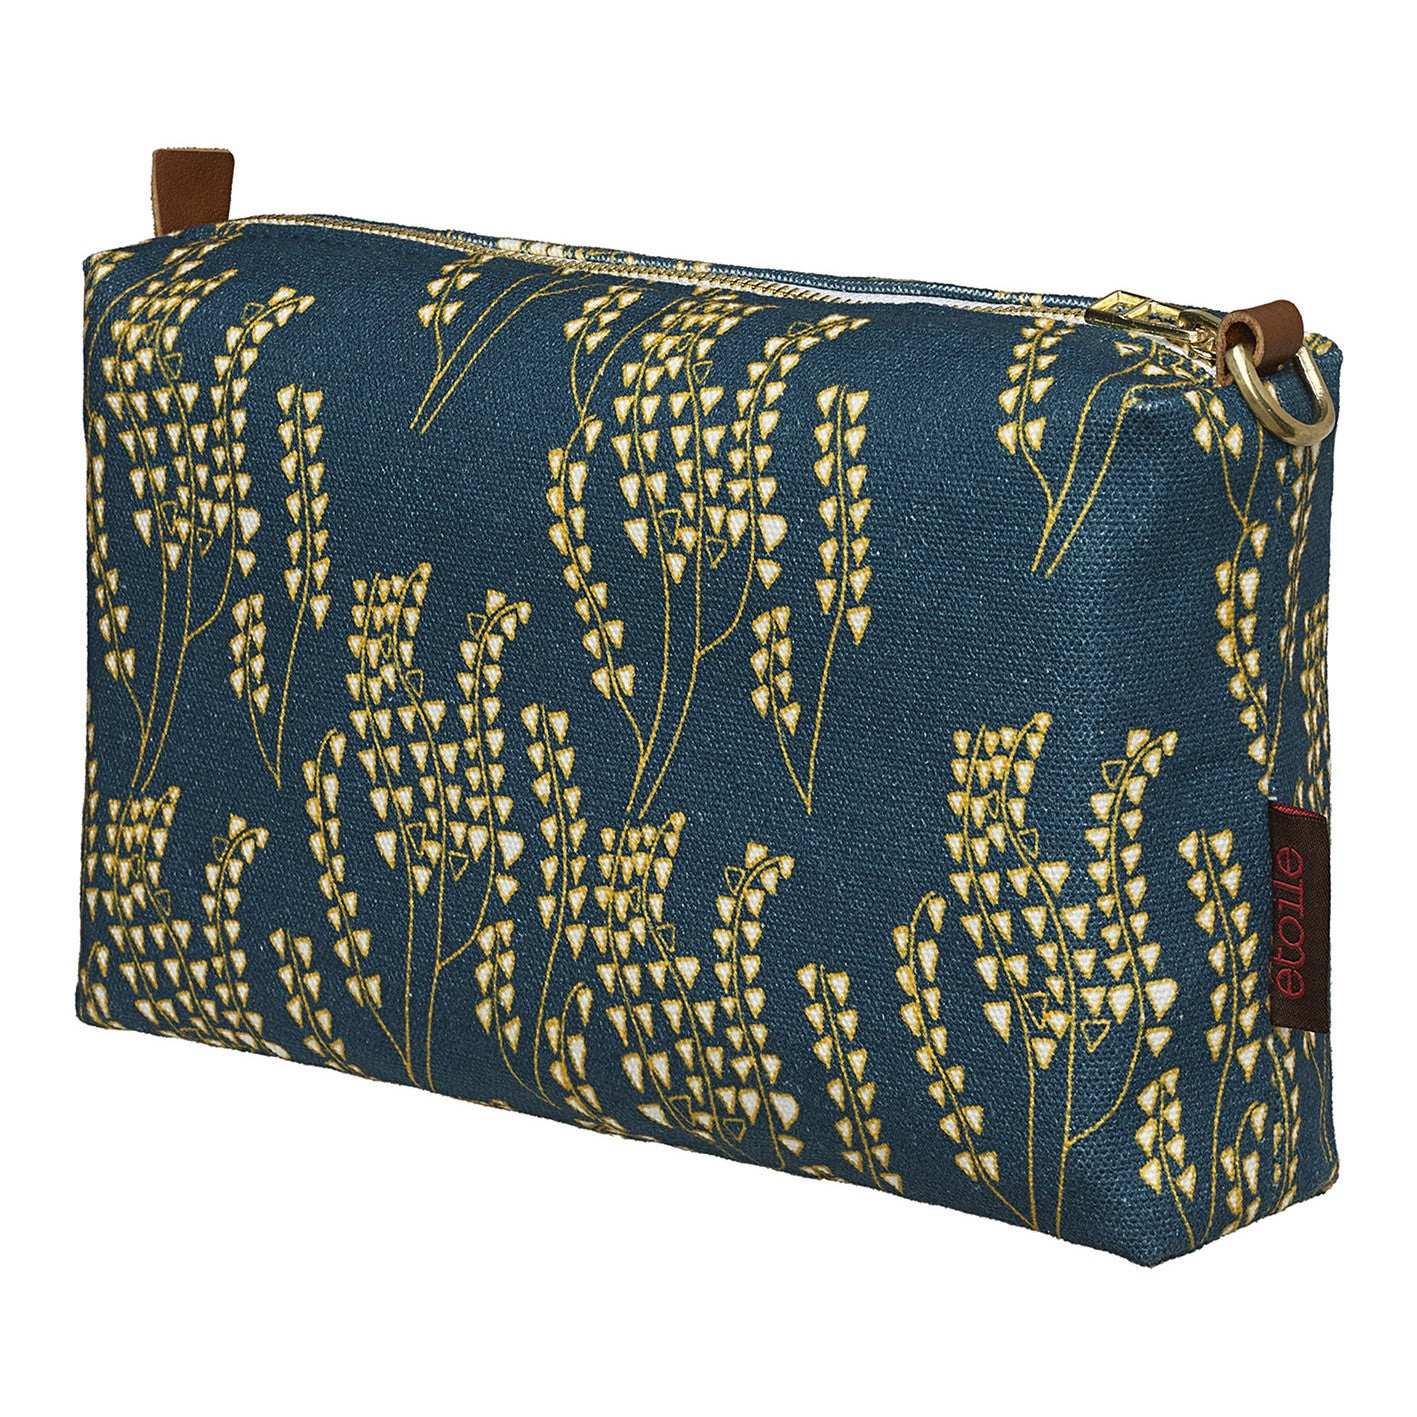 Maricopa Graphic Floral Pattern Canvas Toiletry Bag in Dark Petrol Blue - Maize Yellow